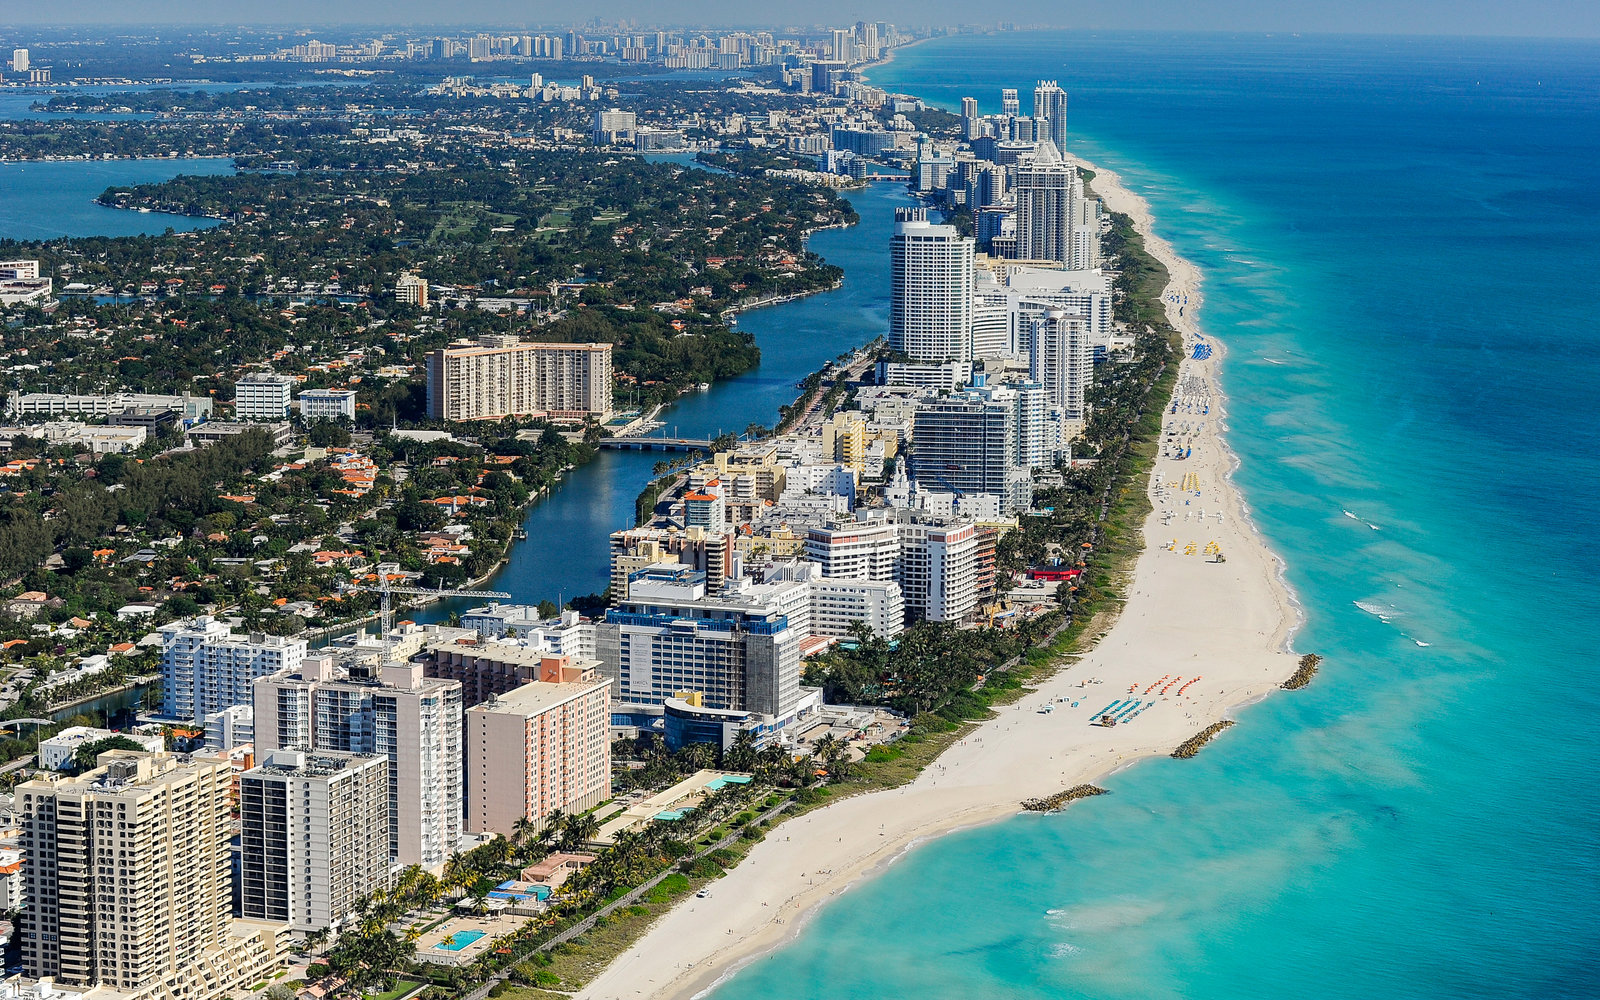 Miami's real estate prices are relatively low, becoming the darling of Chinese real estate investors